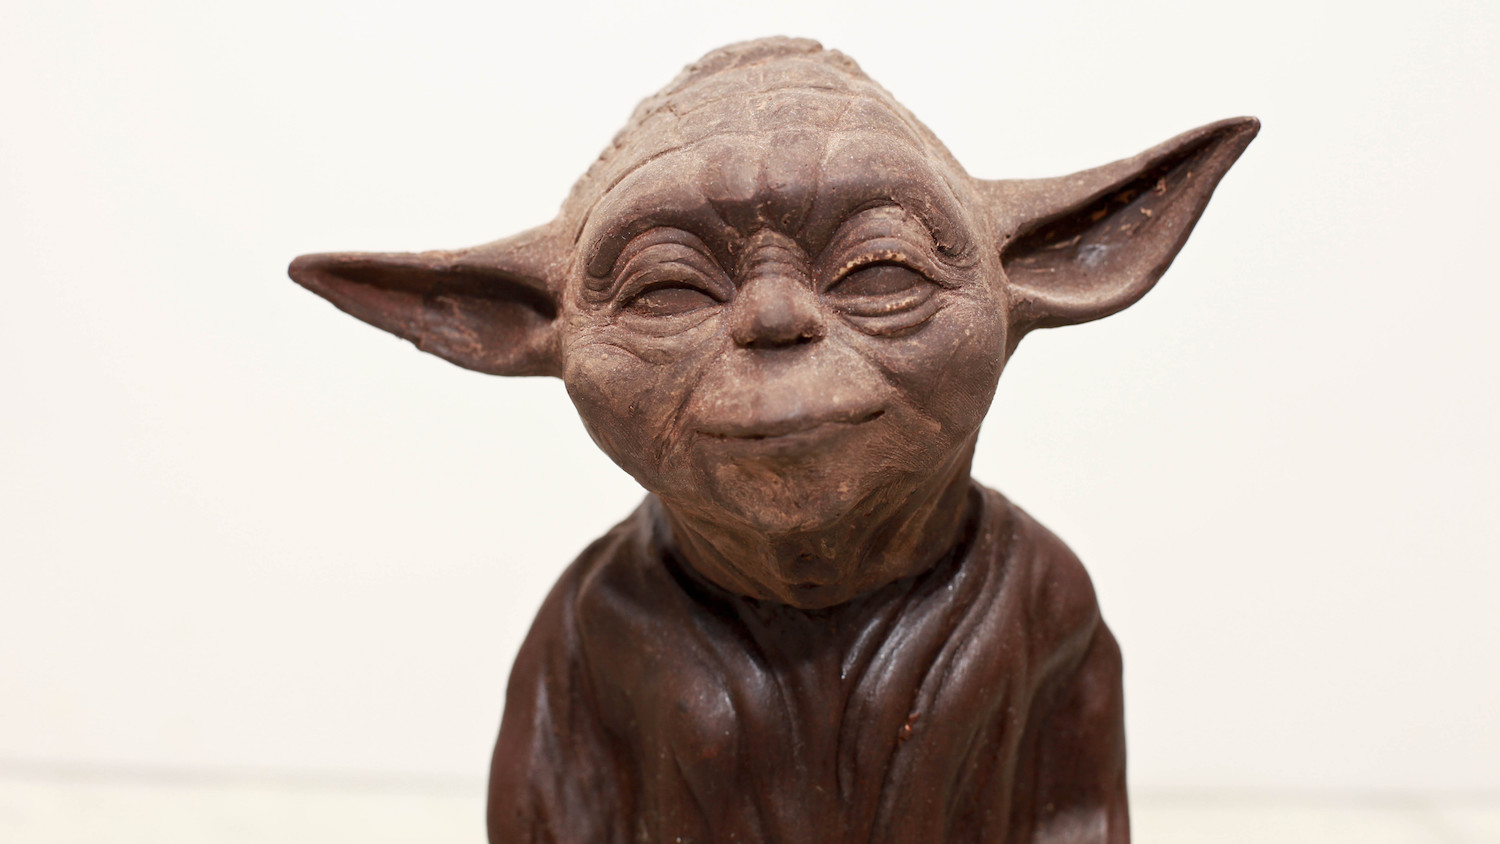 Yoda chocolate sculpture